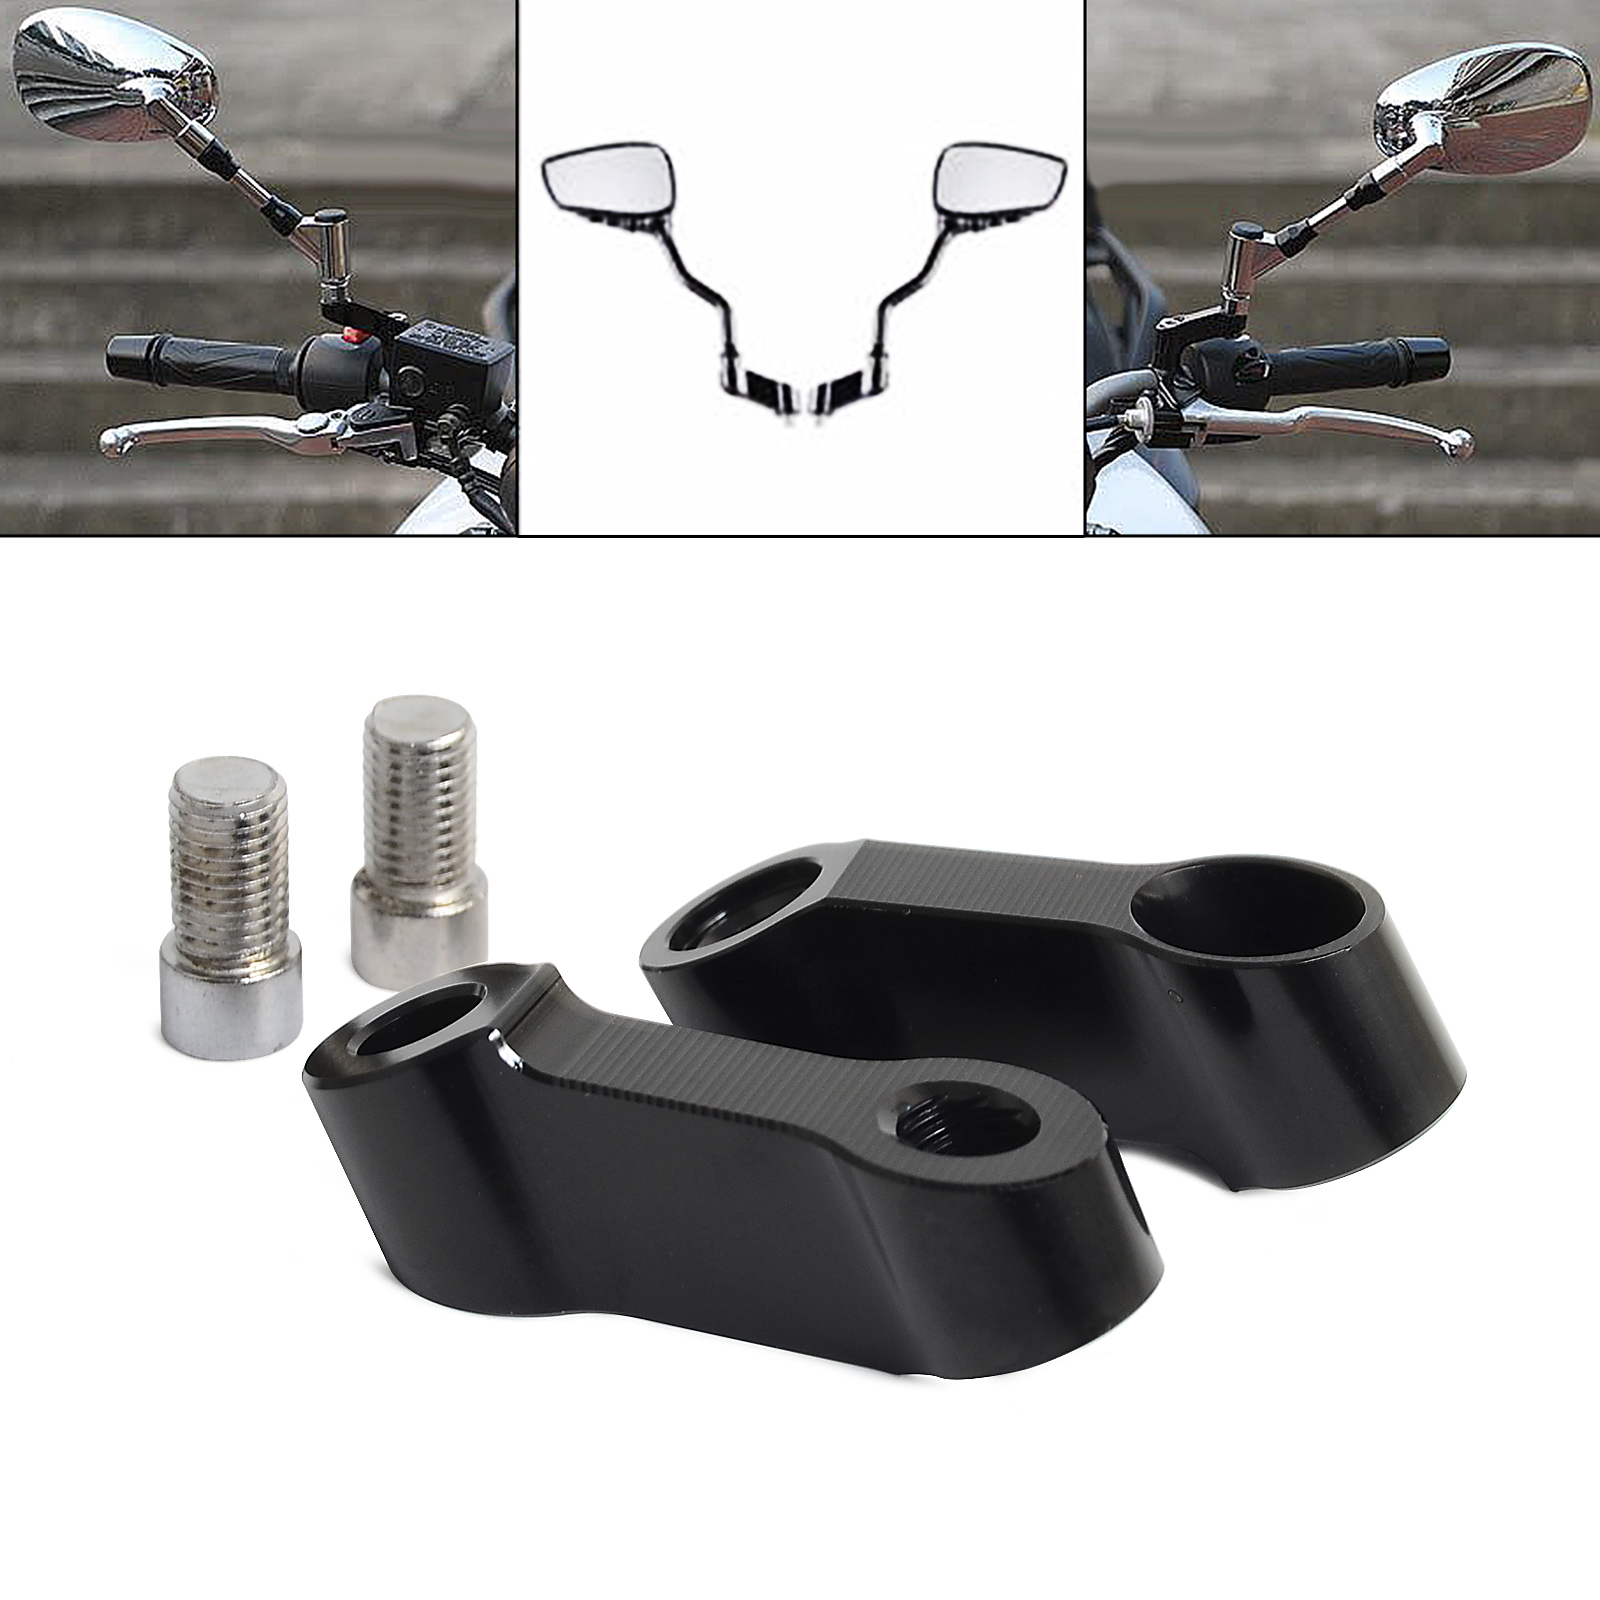 Motorcycle Accessories & Parts Automobiles & Motorcycles Universal Motorcycle Bicycle Mobile Phone Bracket Aluminum Fixed Navigation For Ducati St4s Scrambler Desert Sled 950 1200 Gt